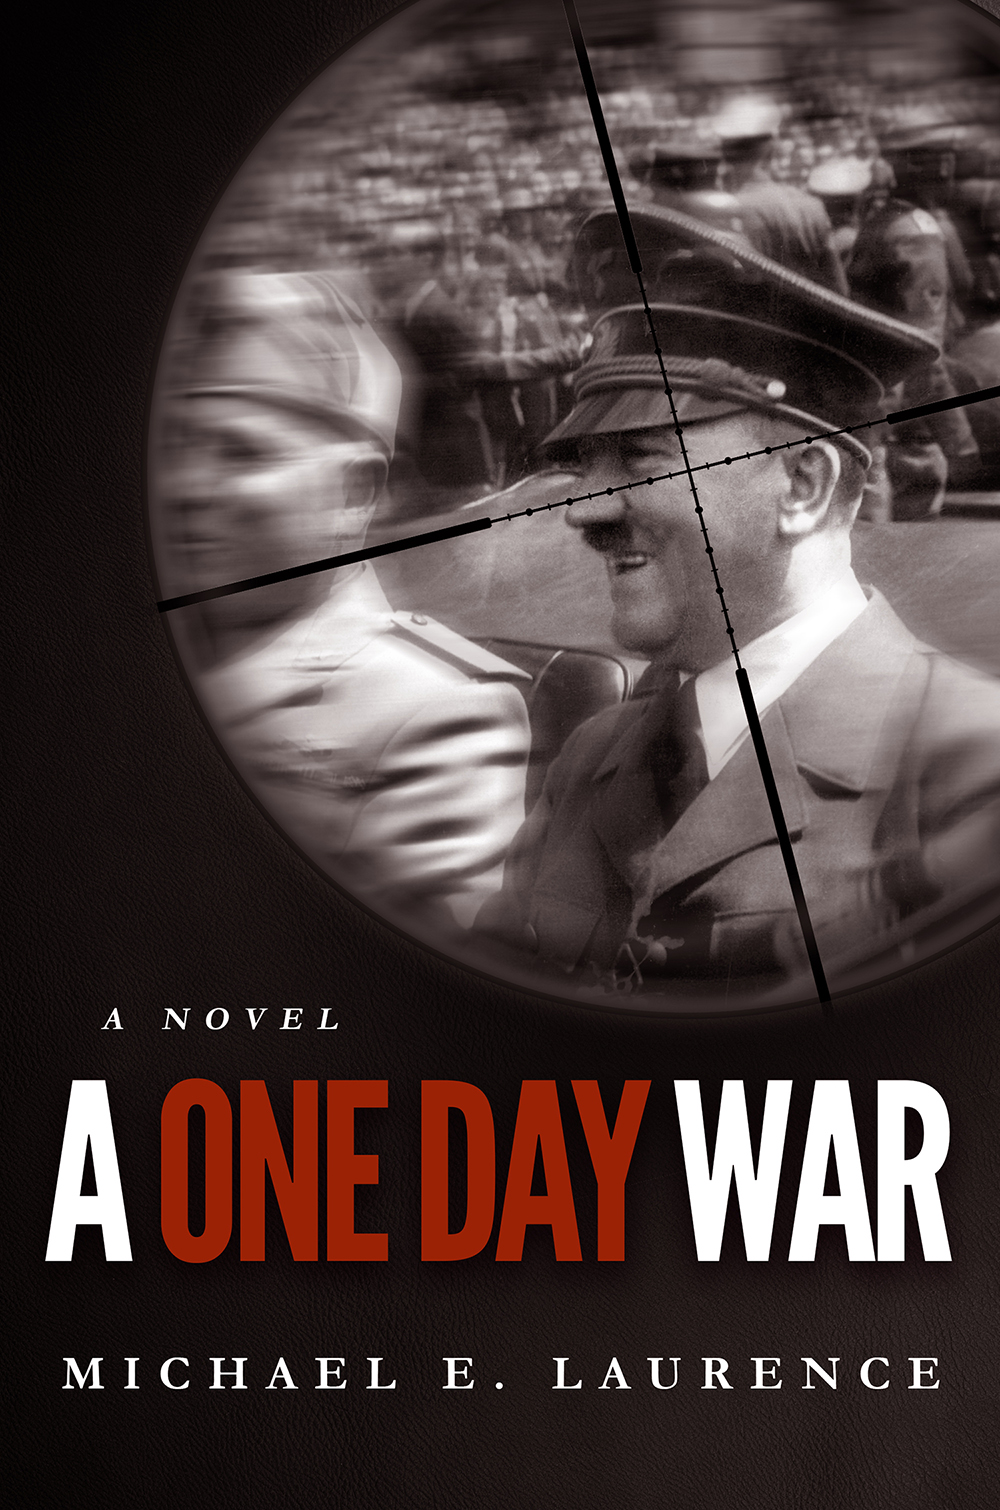 A One Day War (Small)